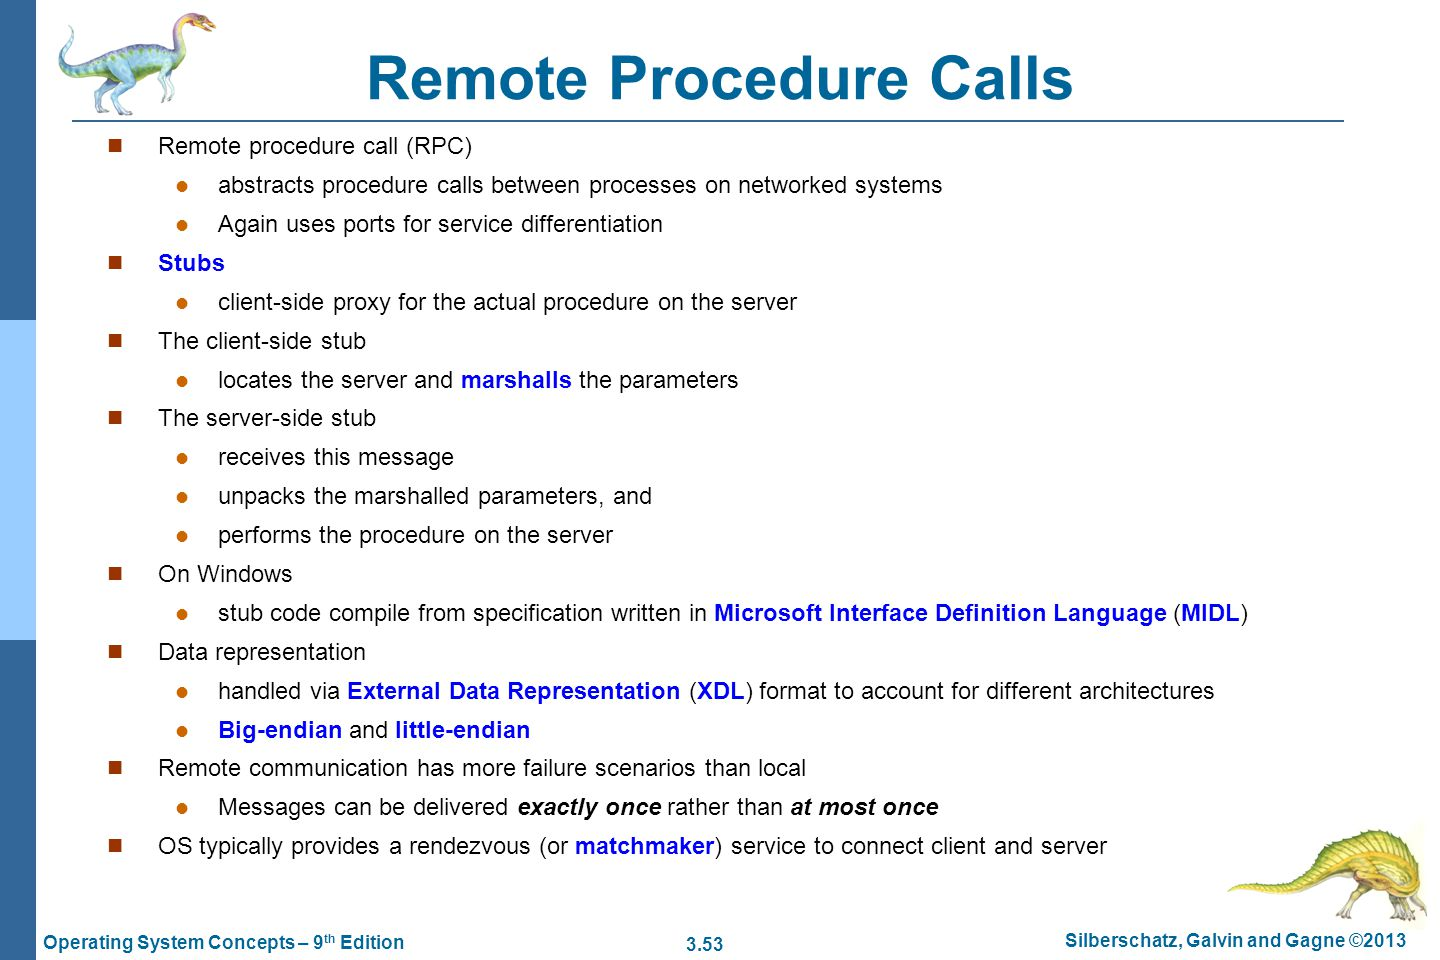 3.53 Silberschatz, Galvin and Gagne ©2013 Operating System Concepts – 9 th Edition Remote Procedure Calls Remote procedure call (RPC) abstracts proced